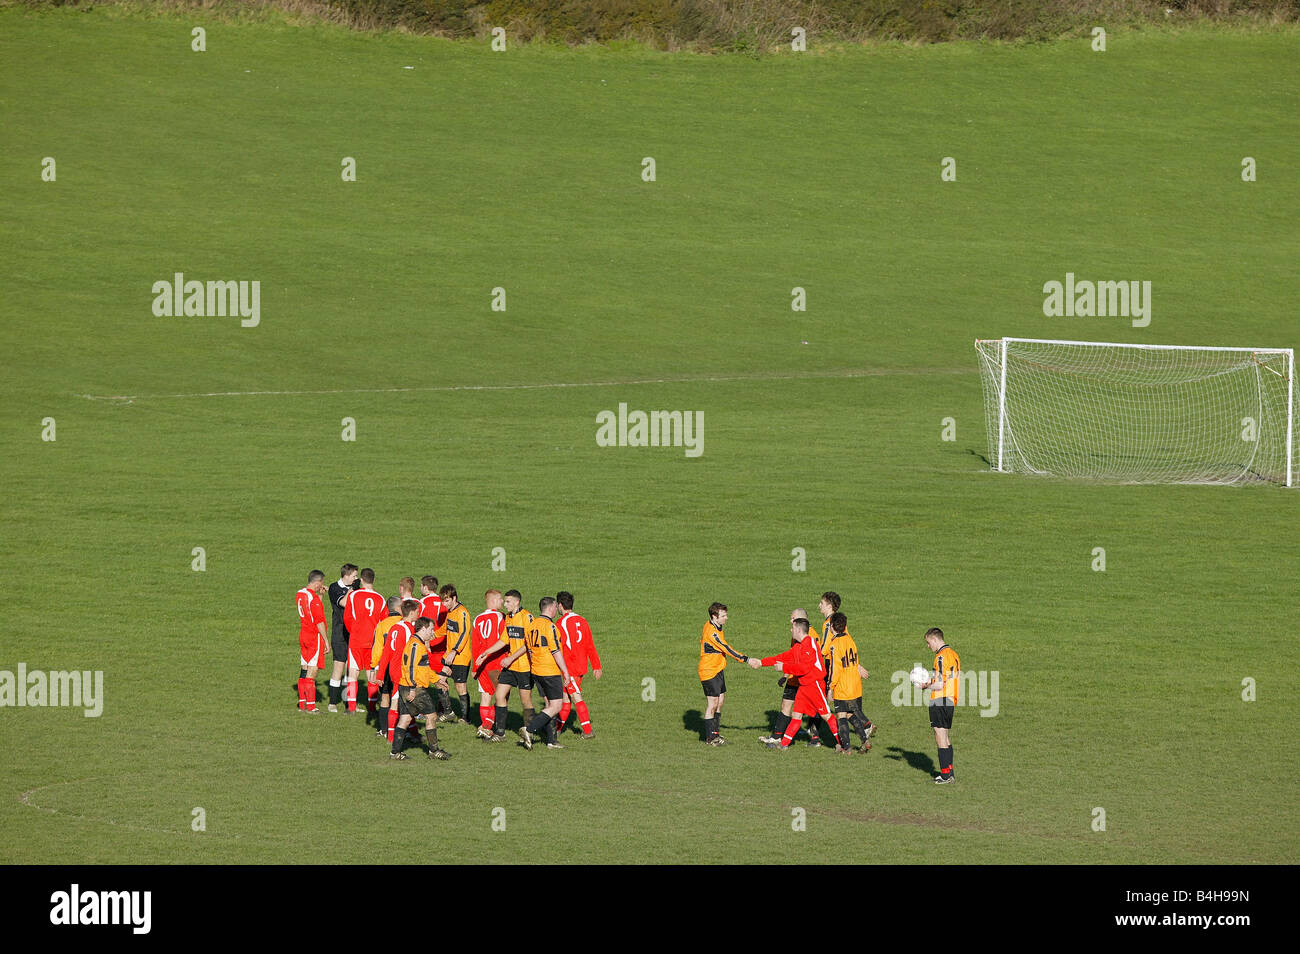 Two Sunday league football teams shake hands at the end of a game. - Stock Image